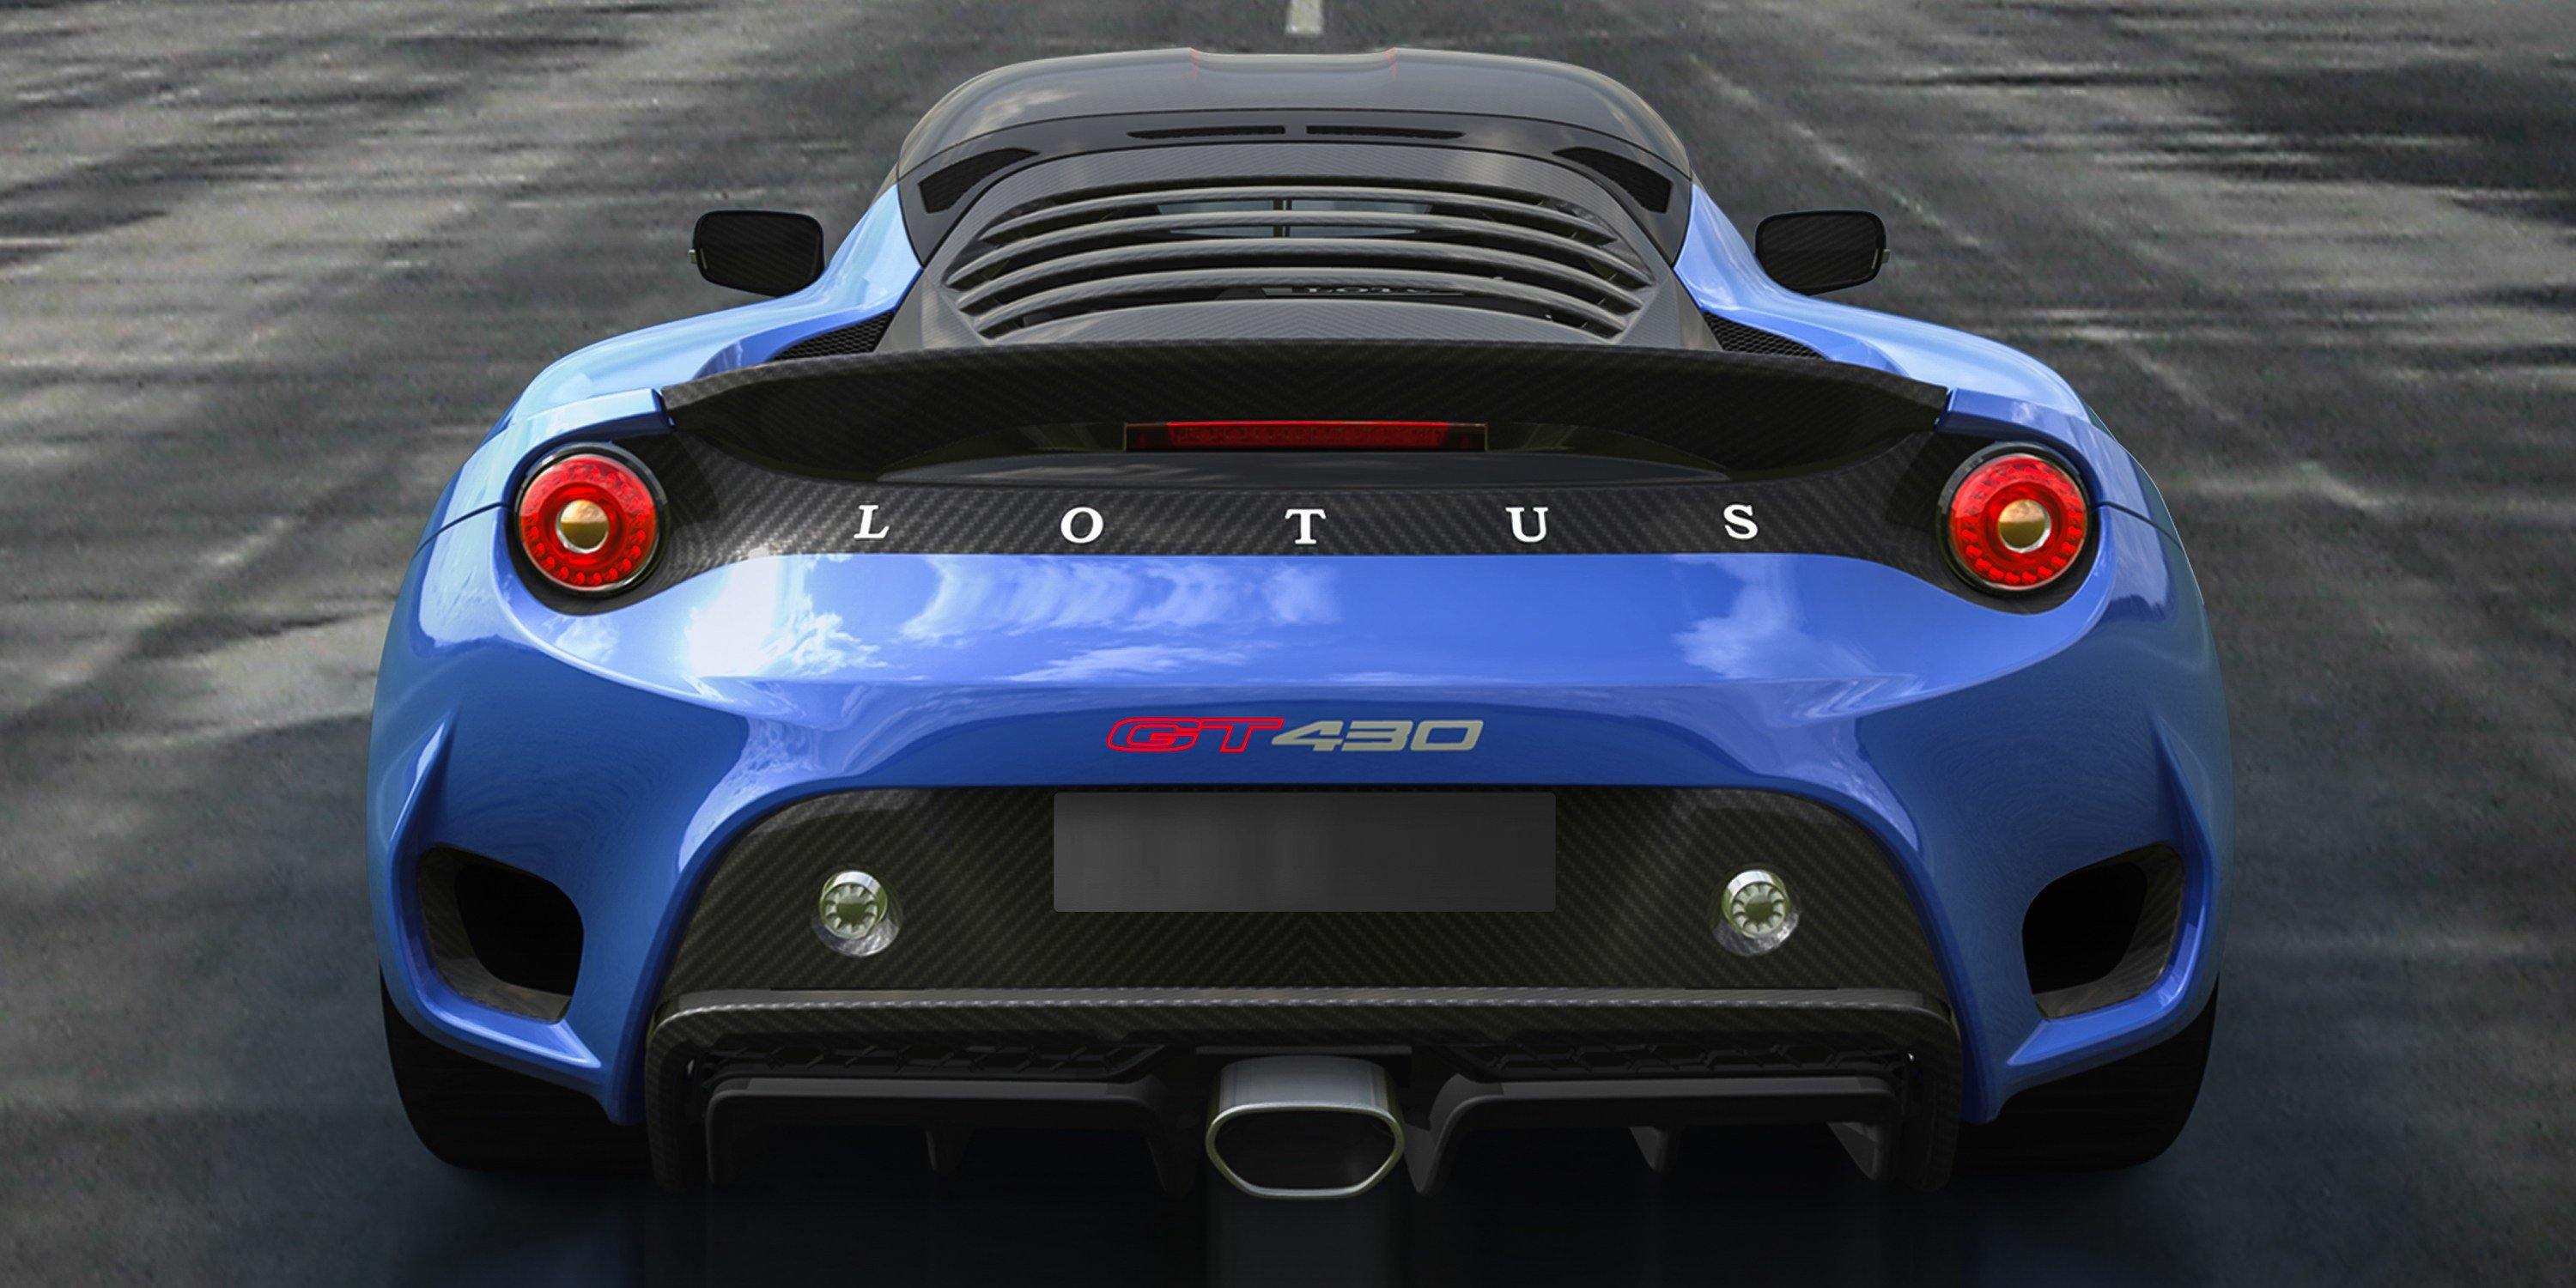 New 2018 Lotus Evora Gt430 Sport Revealed Update Photos 1 On This Month